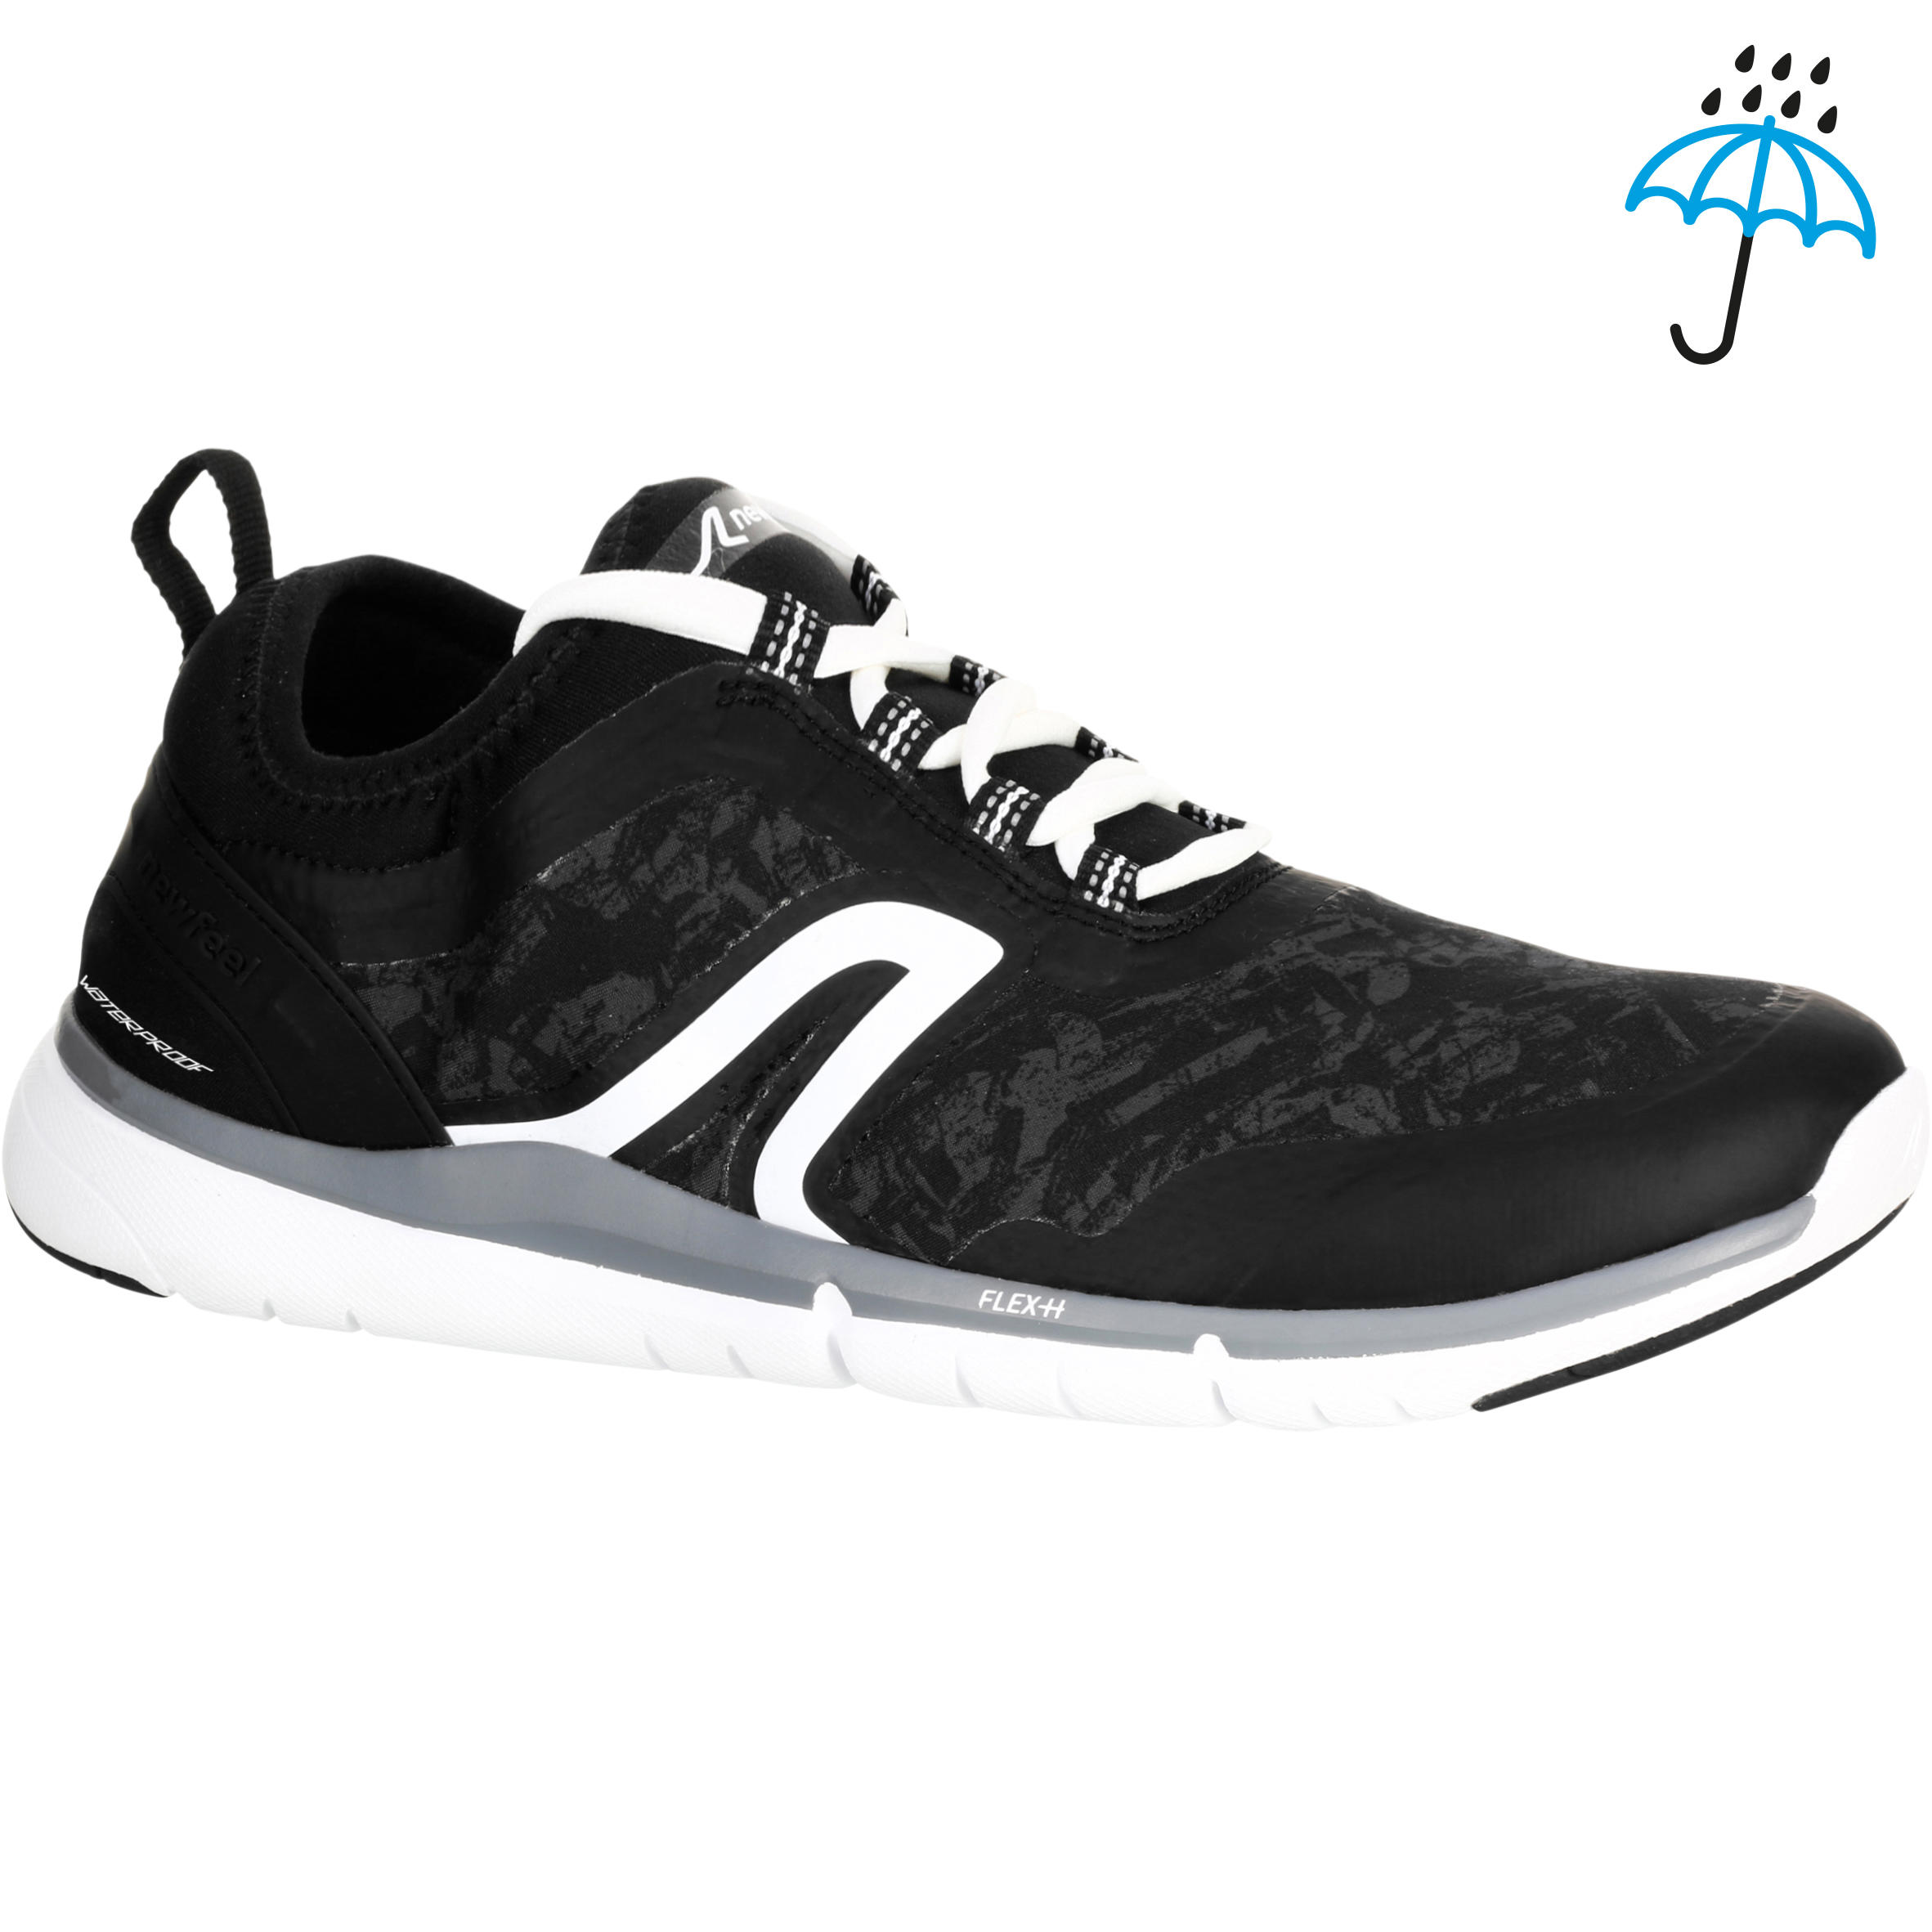 Chaussures marche sportive homme PW 580 Waterproof noir